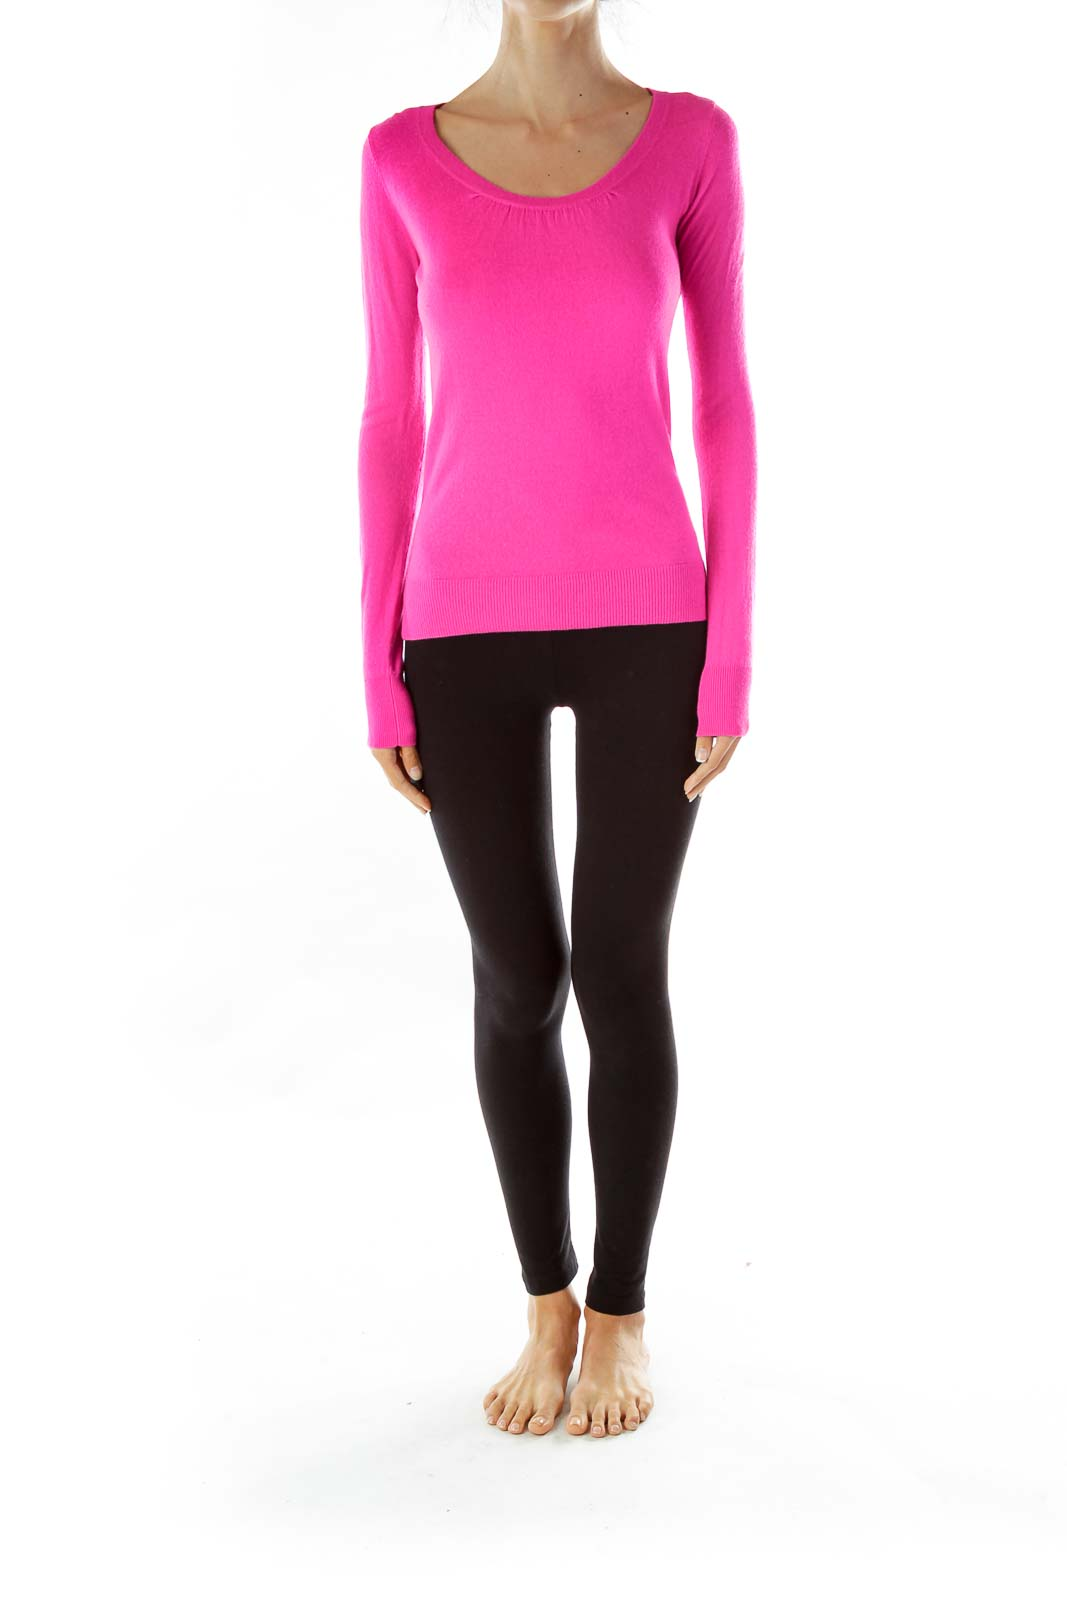 Hot Pink Long Sleeve Knit Top